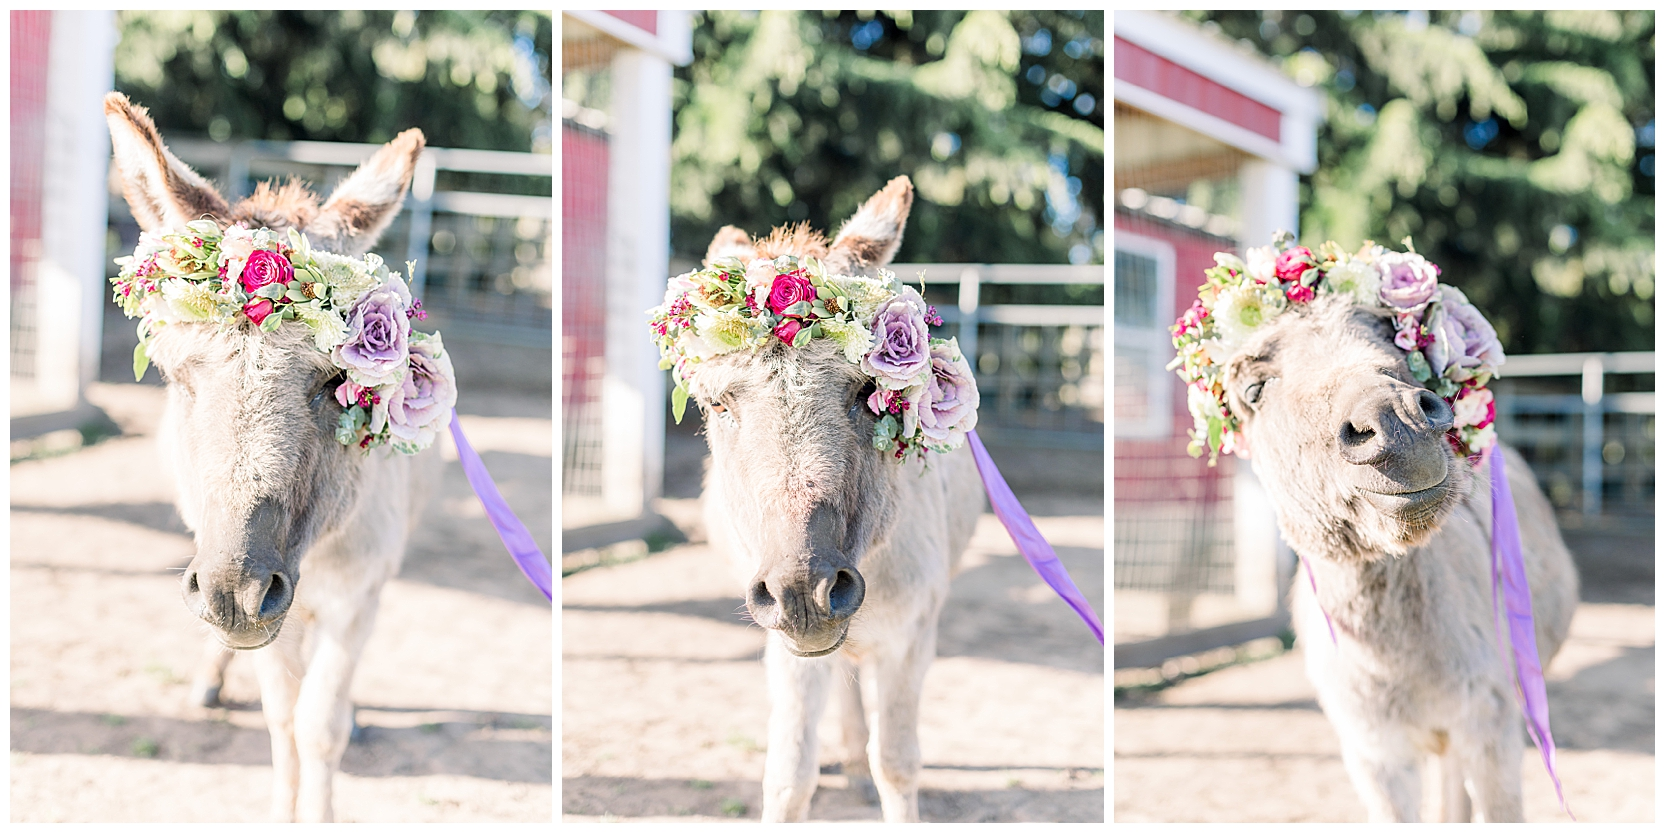 jessicafredericks_st petersburg_wedding_photographer_bridesmaid_farm_donkey_flower crown_inspo_0002.jpg